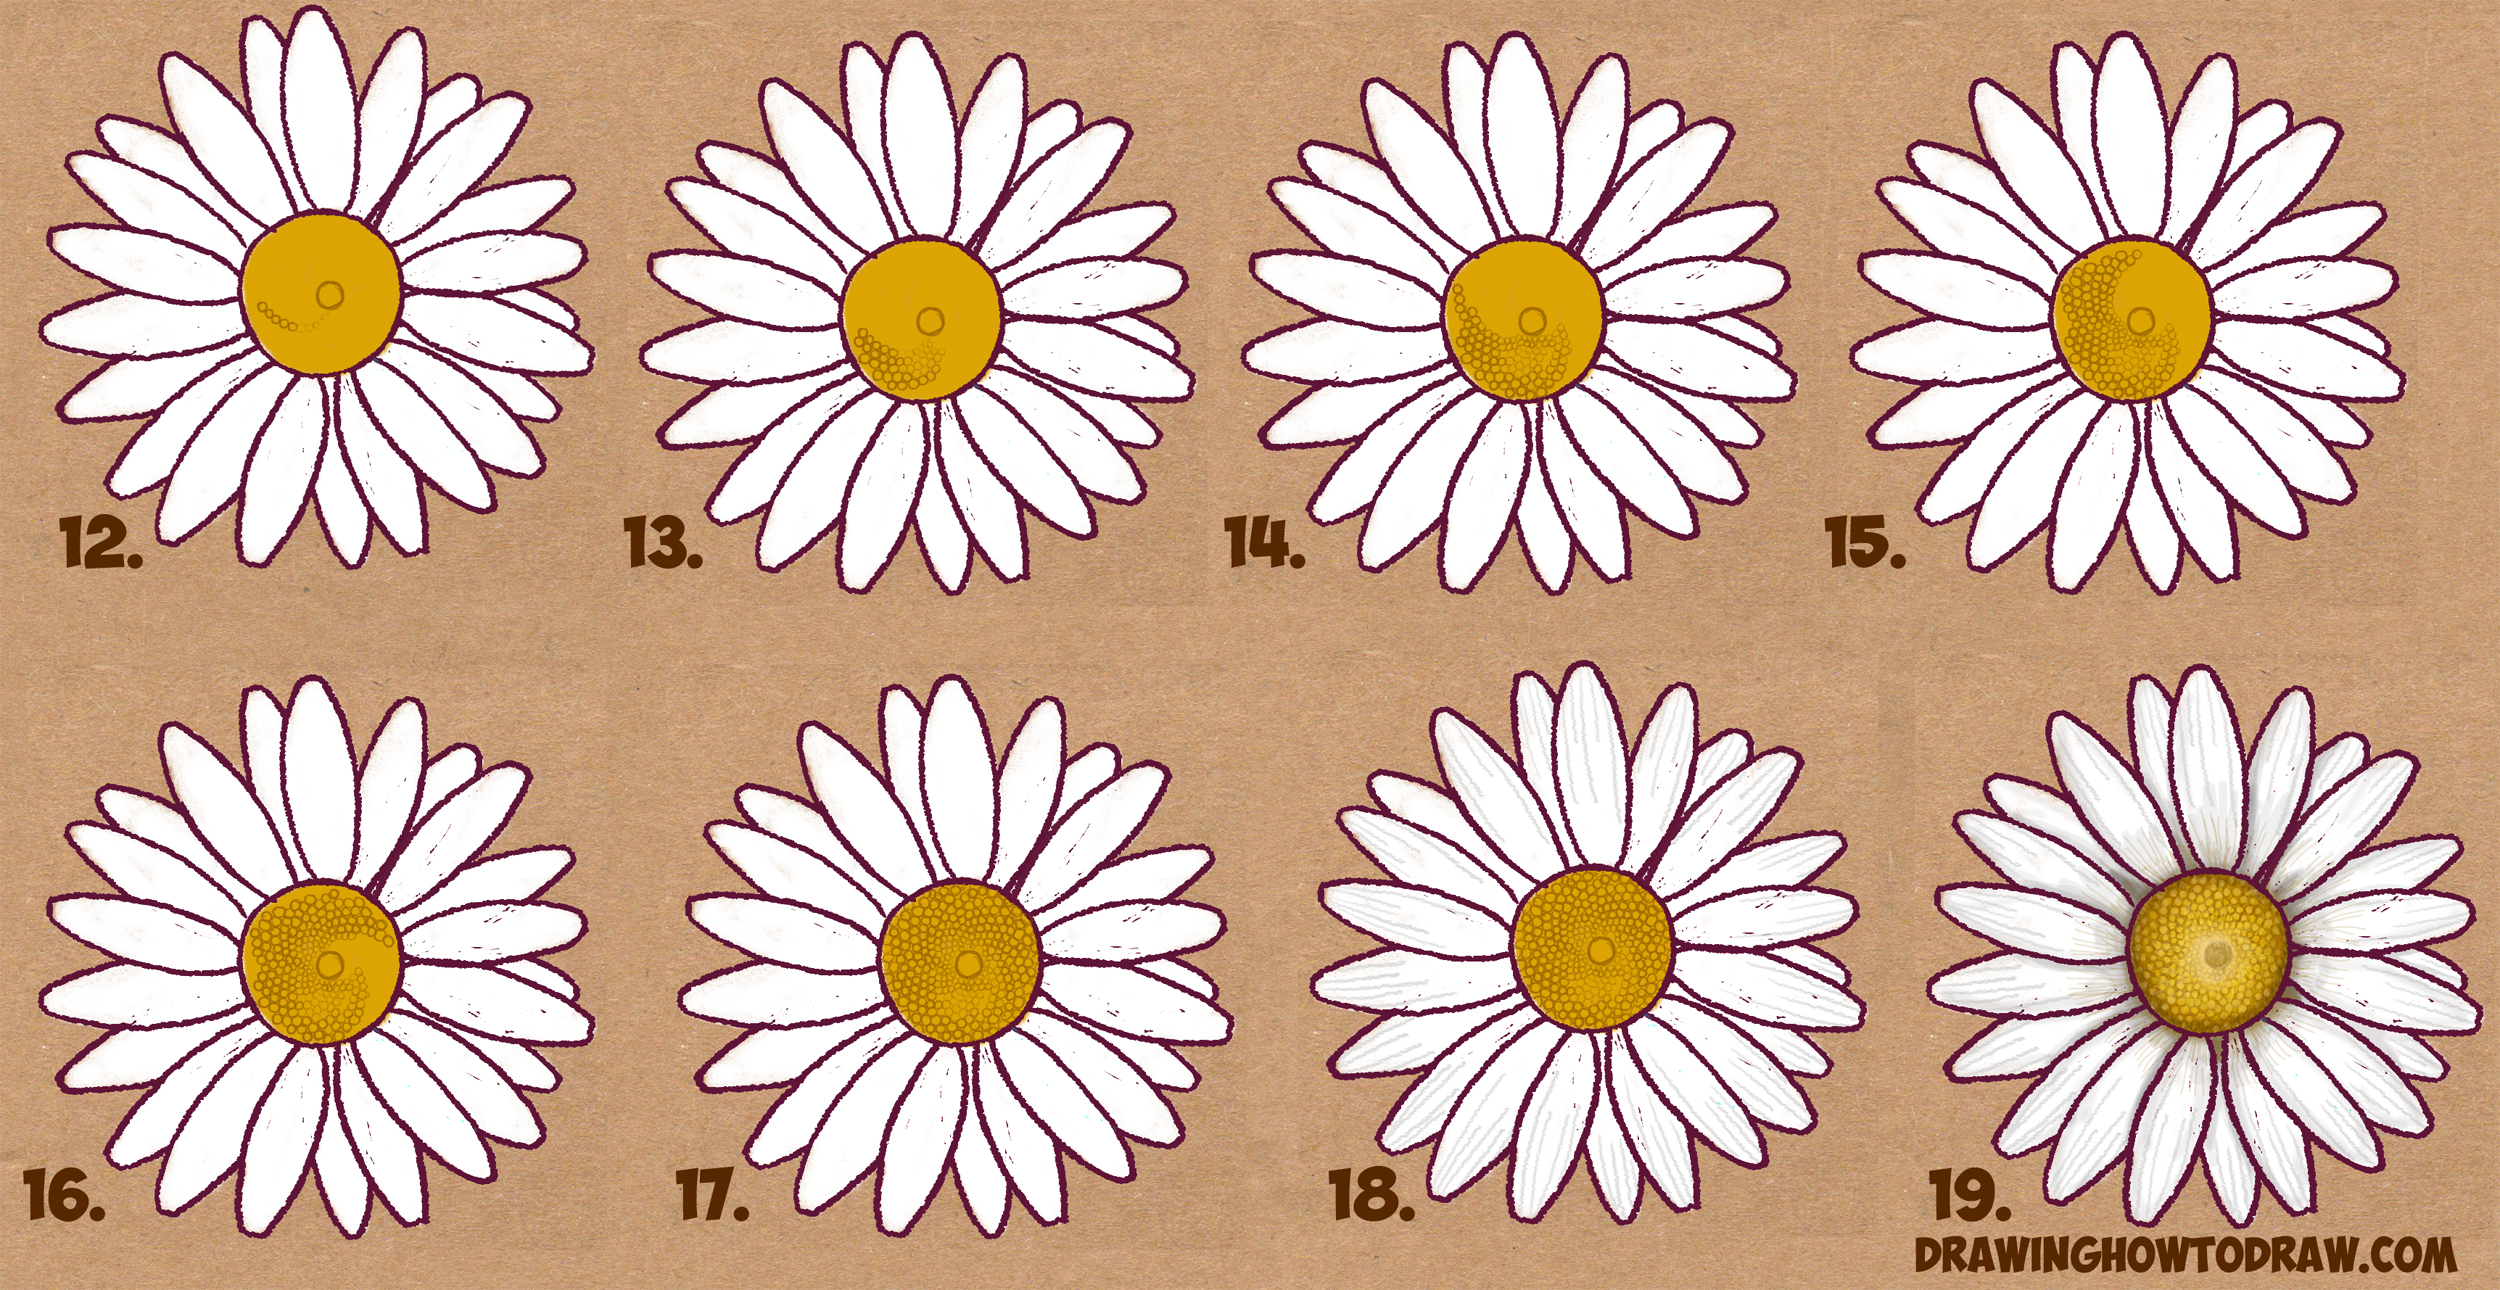 Daisy Flower Drawing At Getdrawings Free For Personal Use